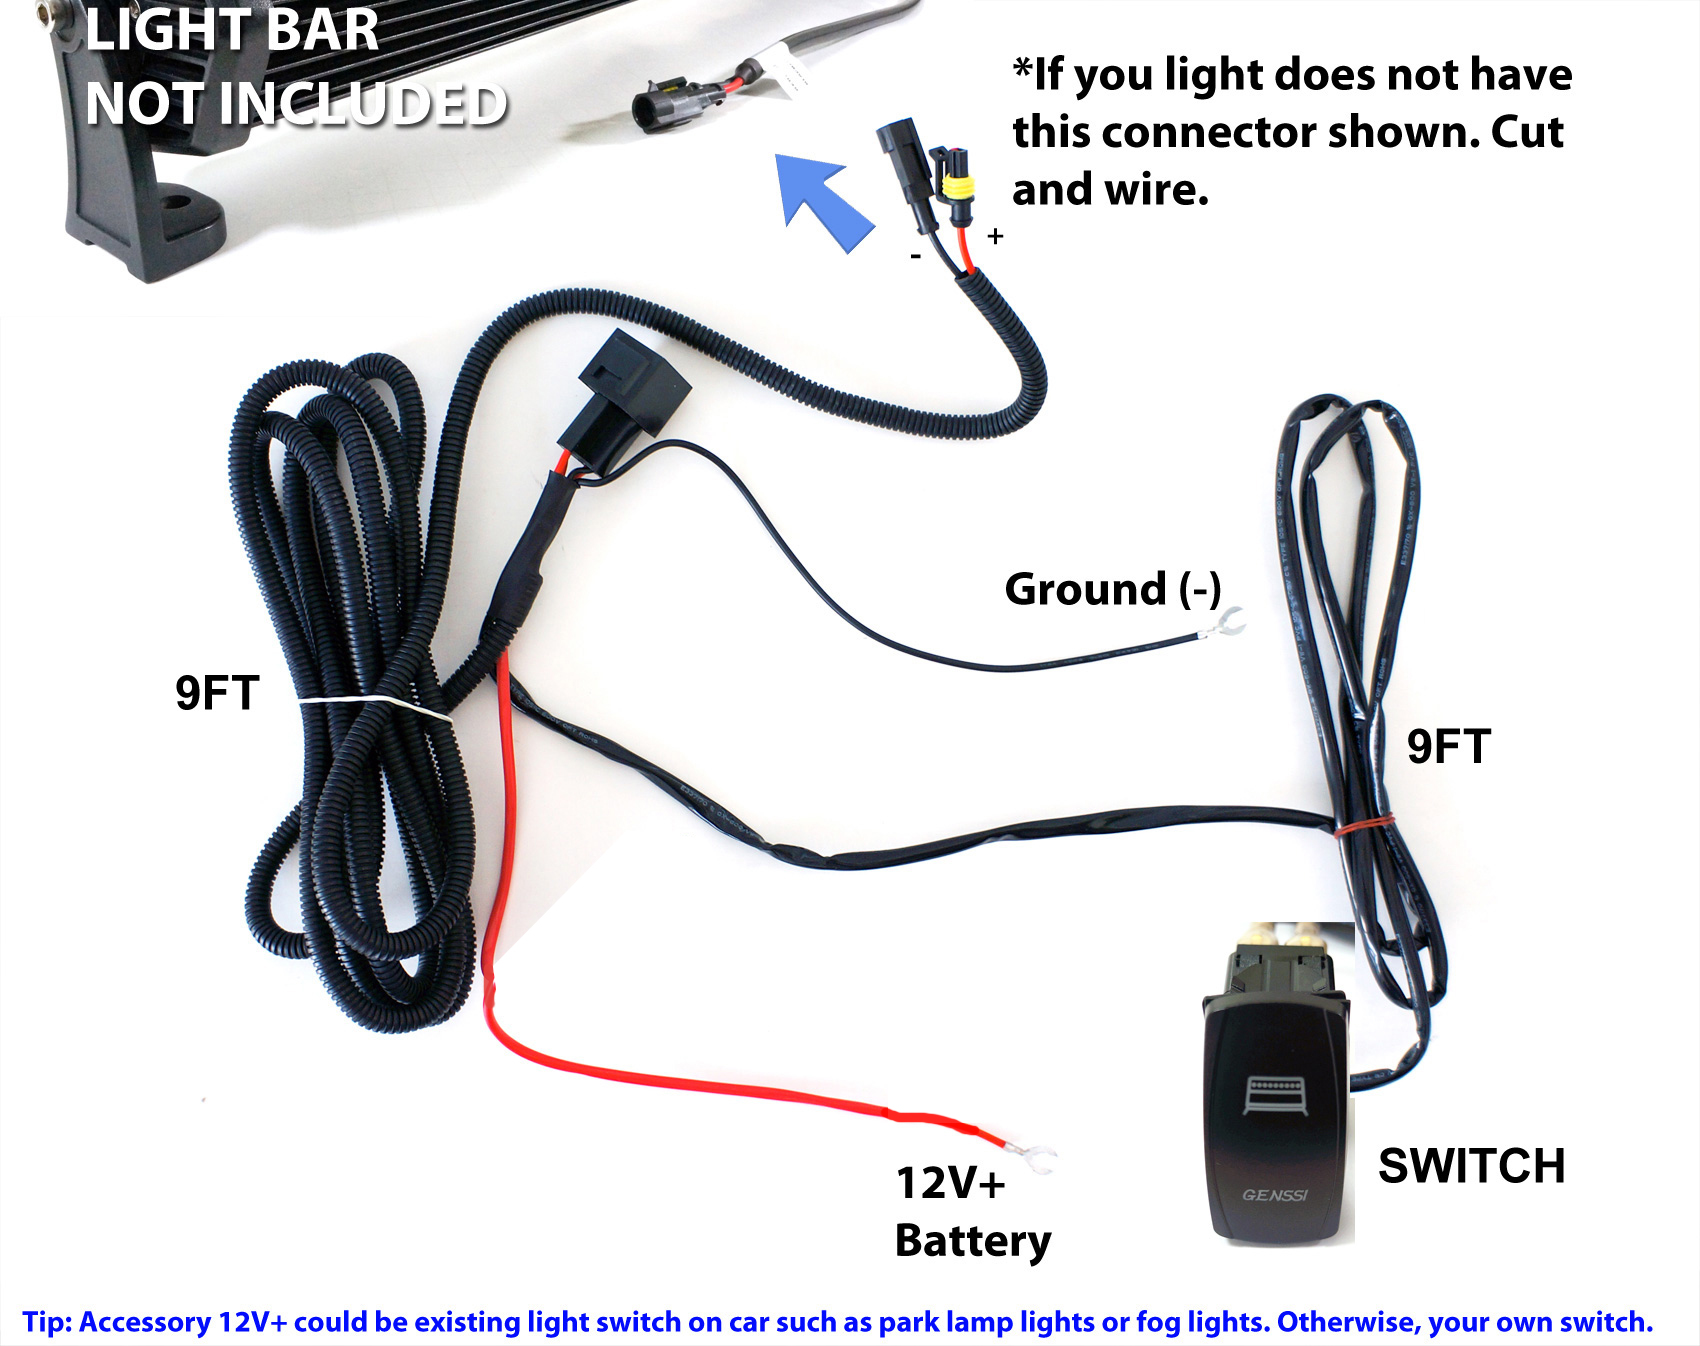 hight resolution of 40a fog work led light bar wiring harness relay fuse kit rocker rh ebay com mx7000 light bar wiring diagram mx7000 light bar wiring diagram